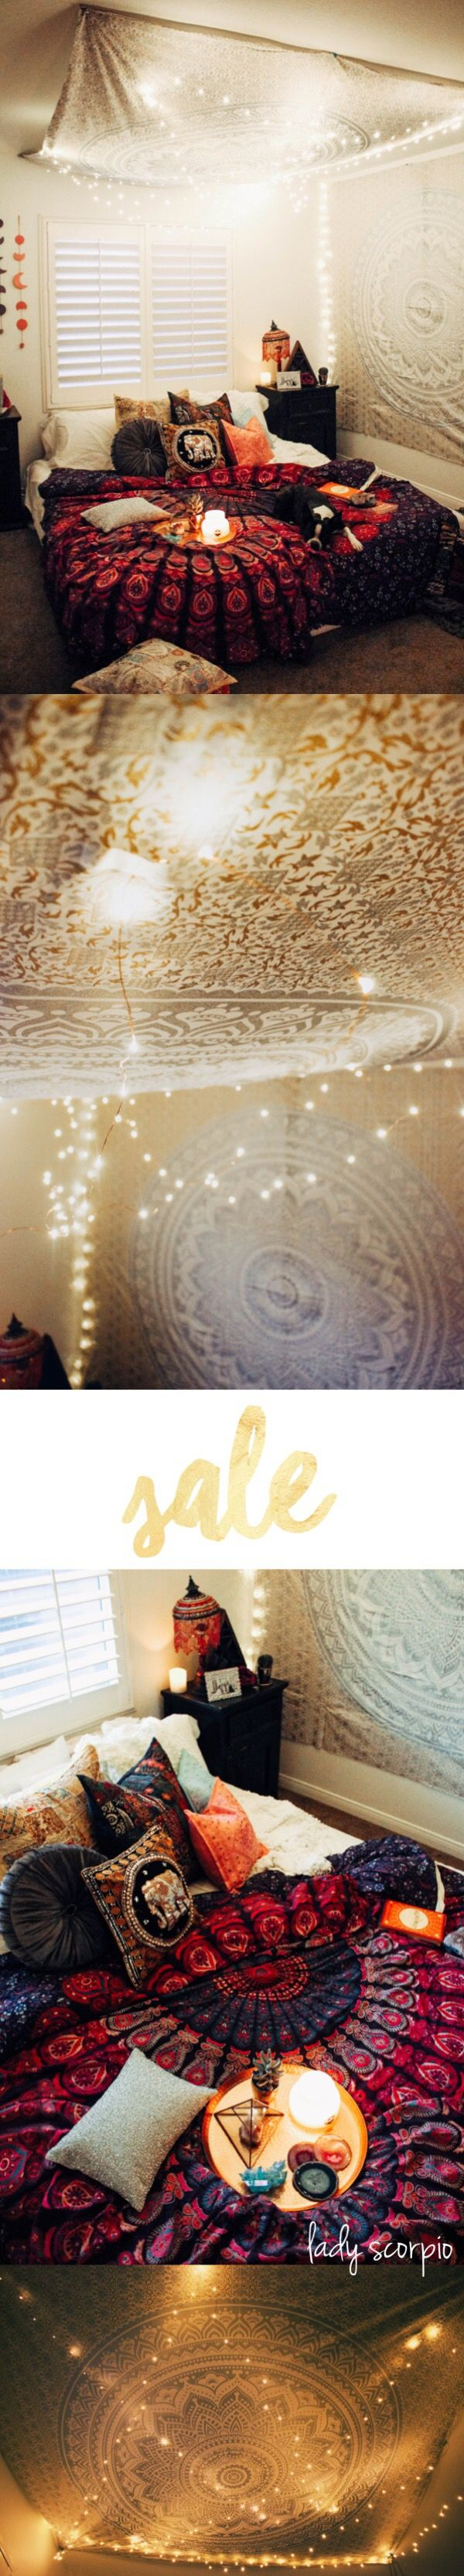 Bedroom Vibes ✨ Silver Gypsy Goddess Tapestry & …